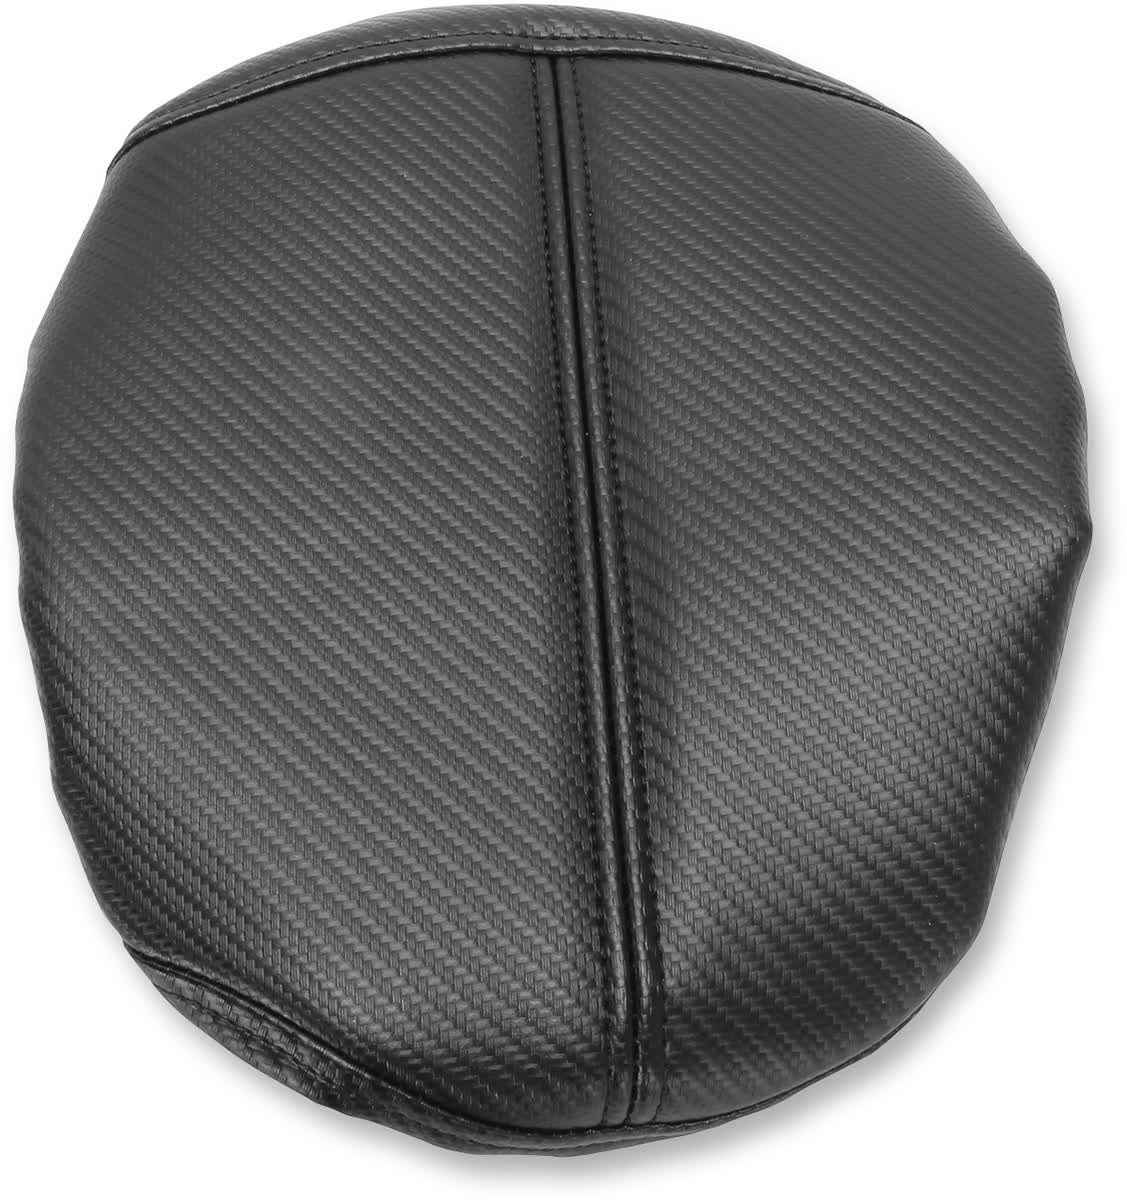 Saddlemen 0810-S070 Seat Gp-V1 Gsxr1000 09-15 0810-1902